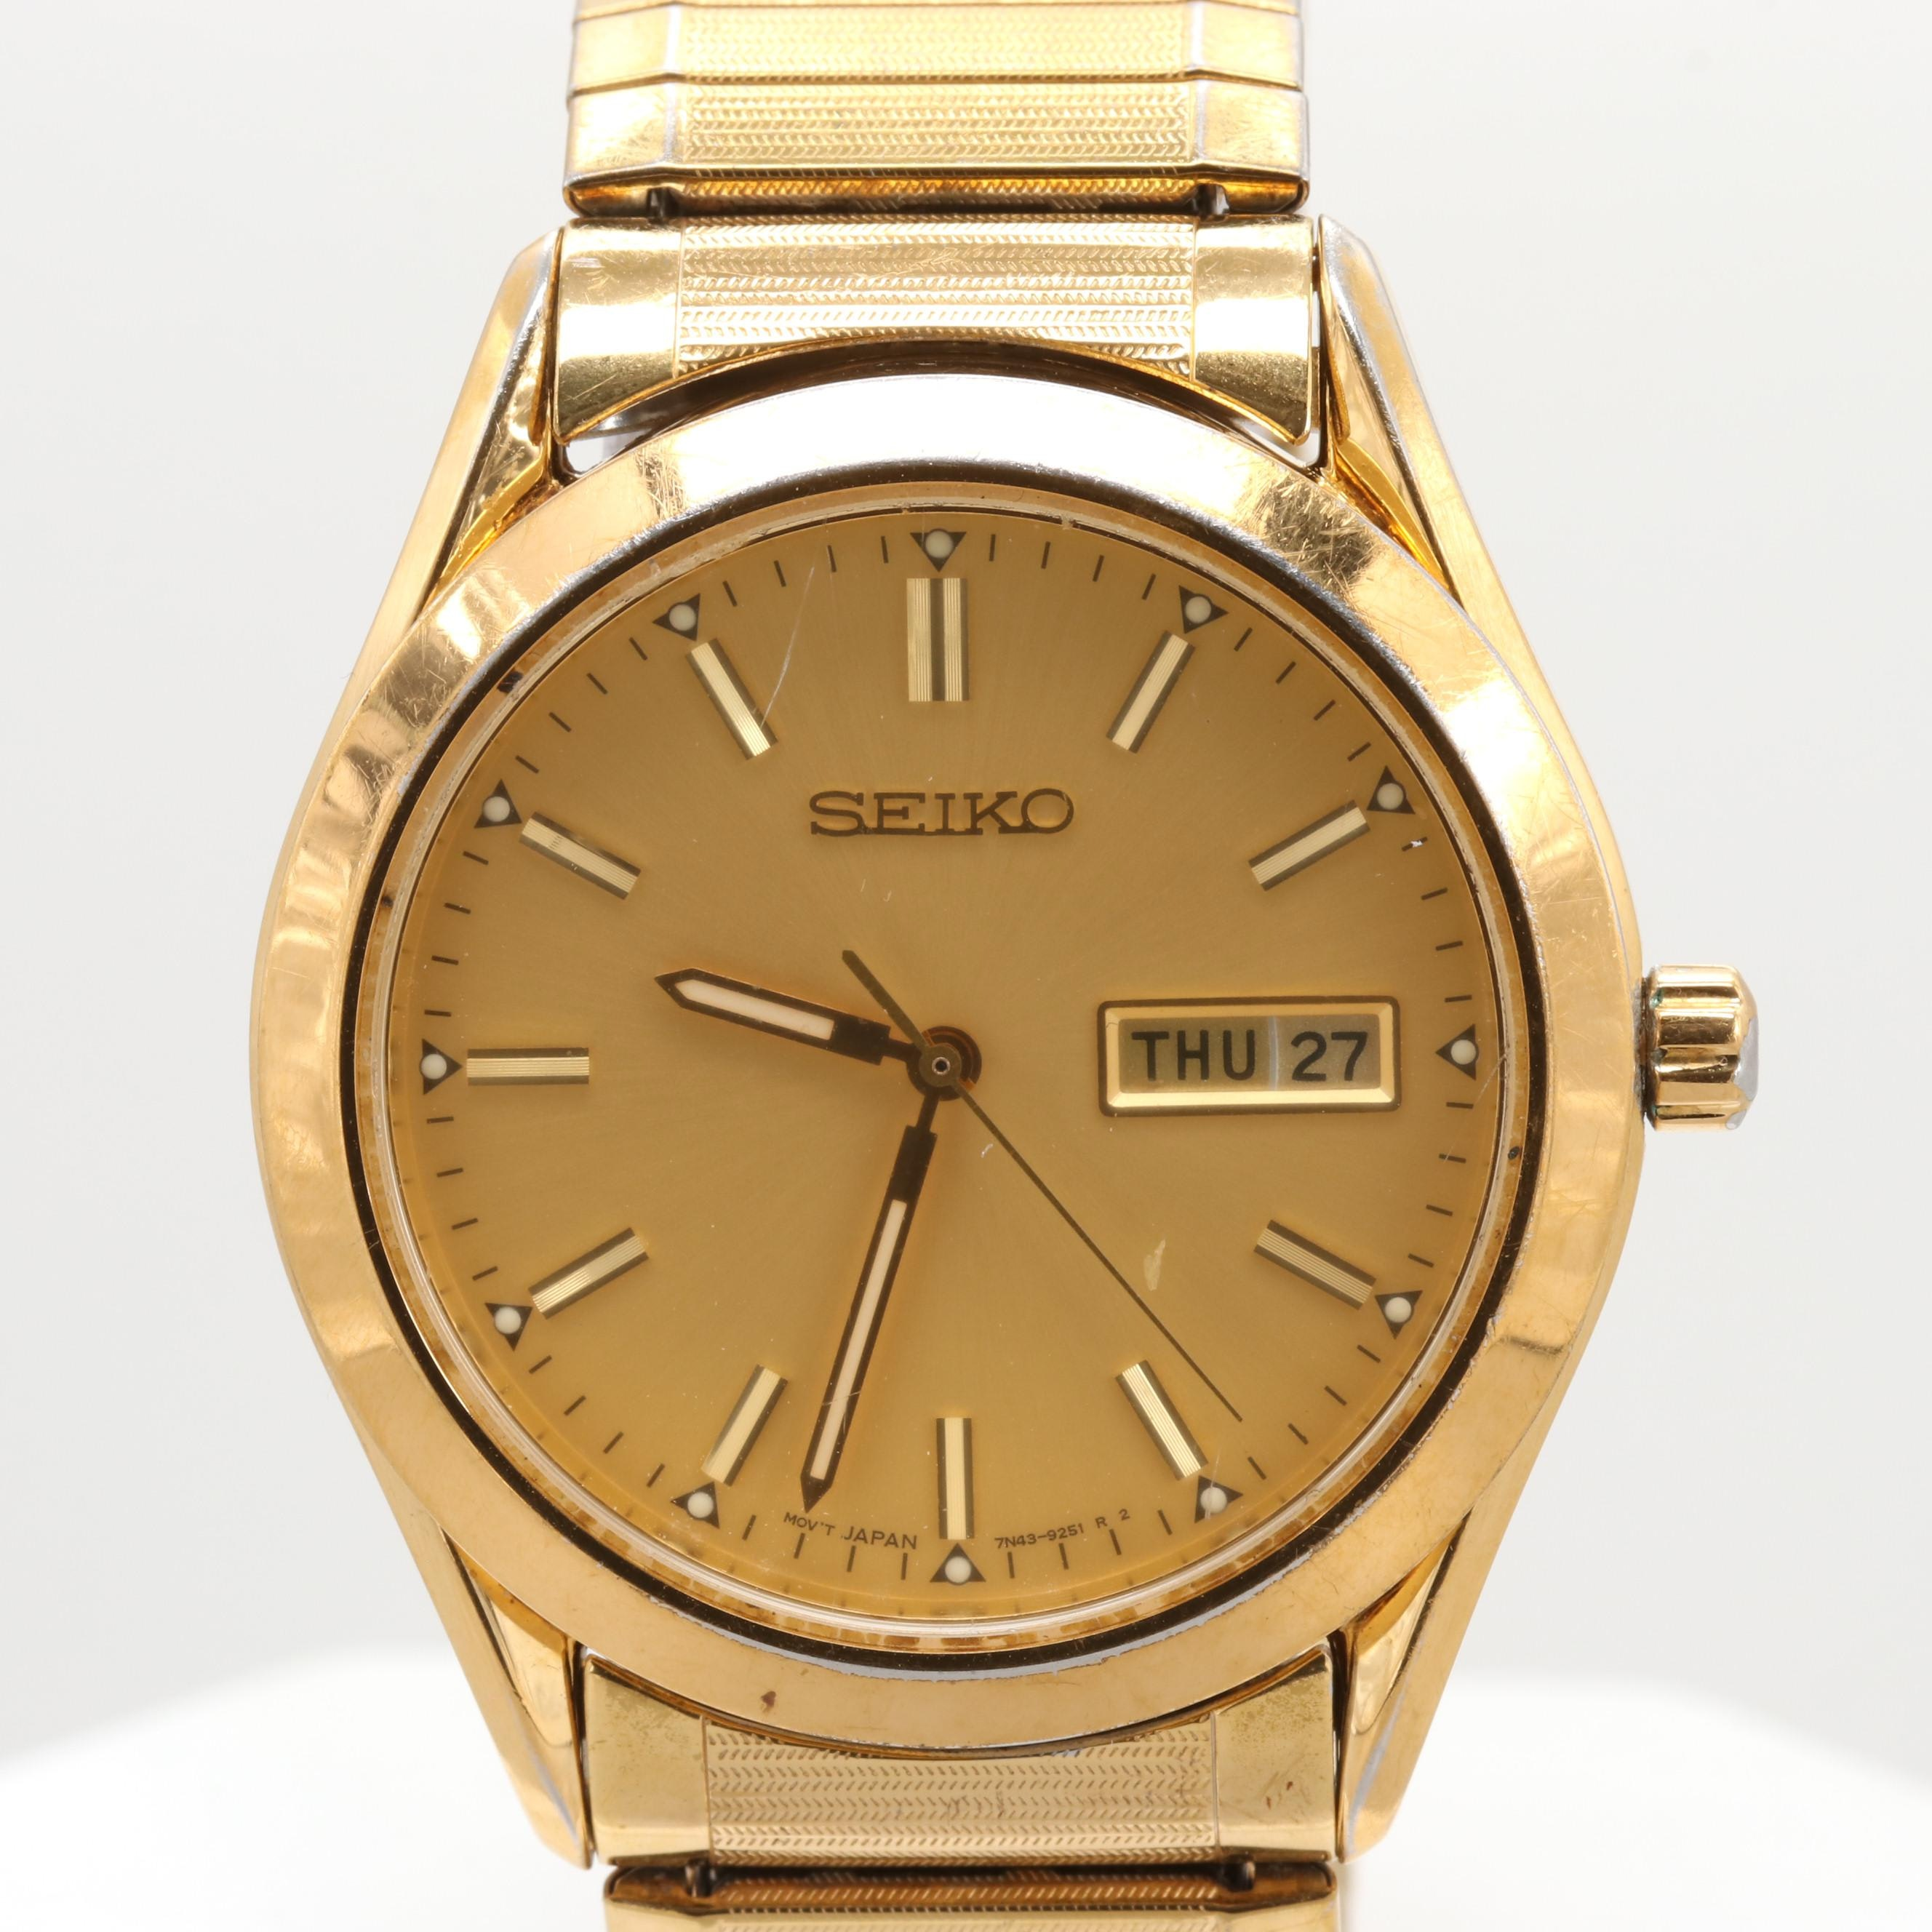 Seiko Gold-Tone Quartz Wristwatch With Day and Date Window